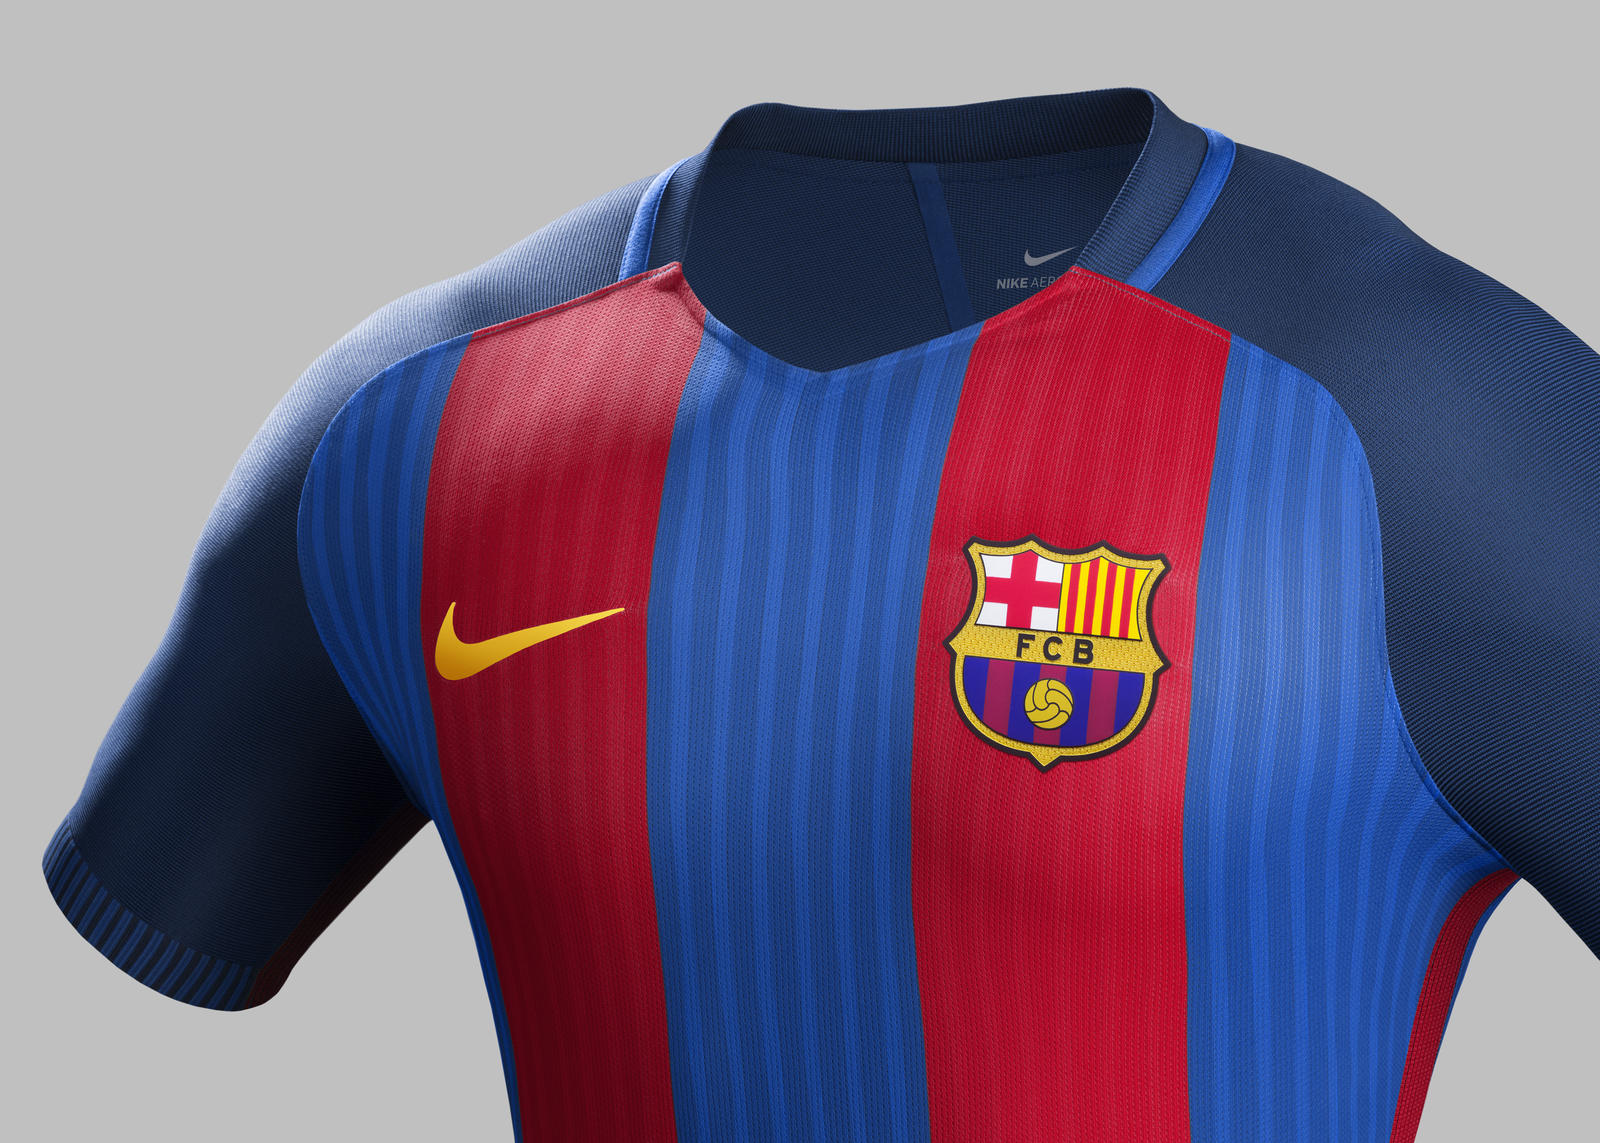 outlet store edc6c 4e97a FC Barcelona Home Kit 2016-17 - Nike News